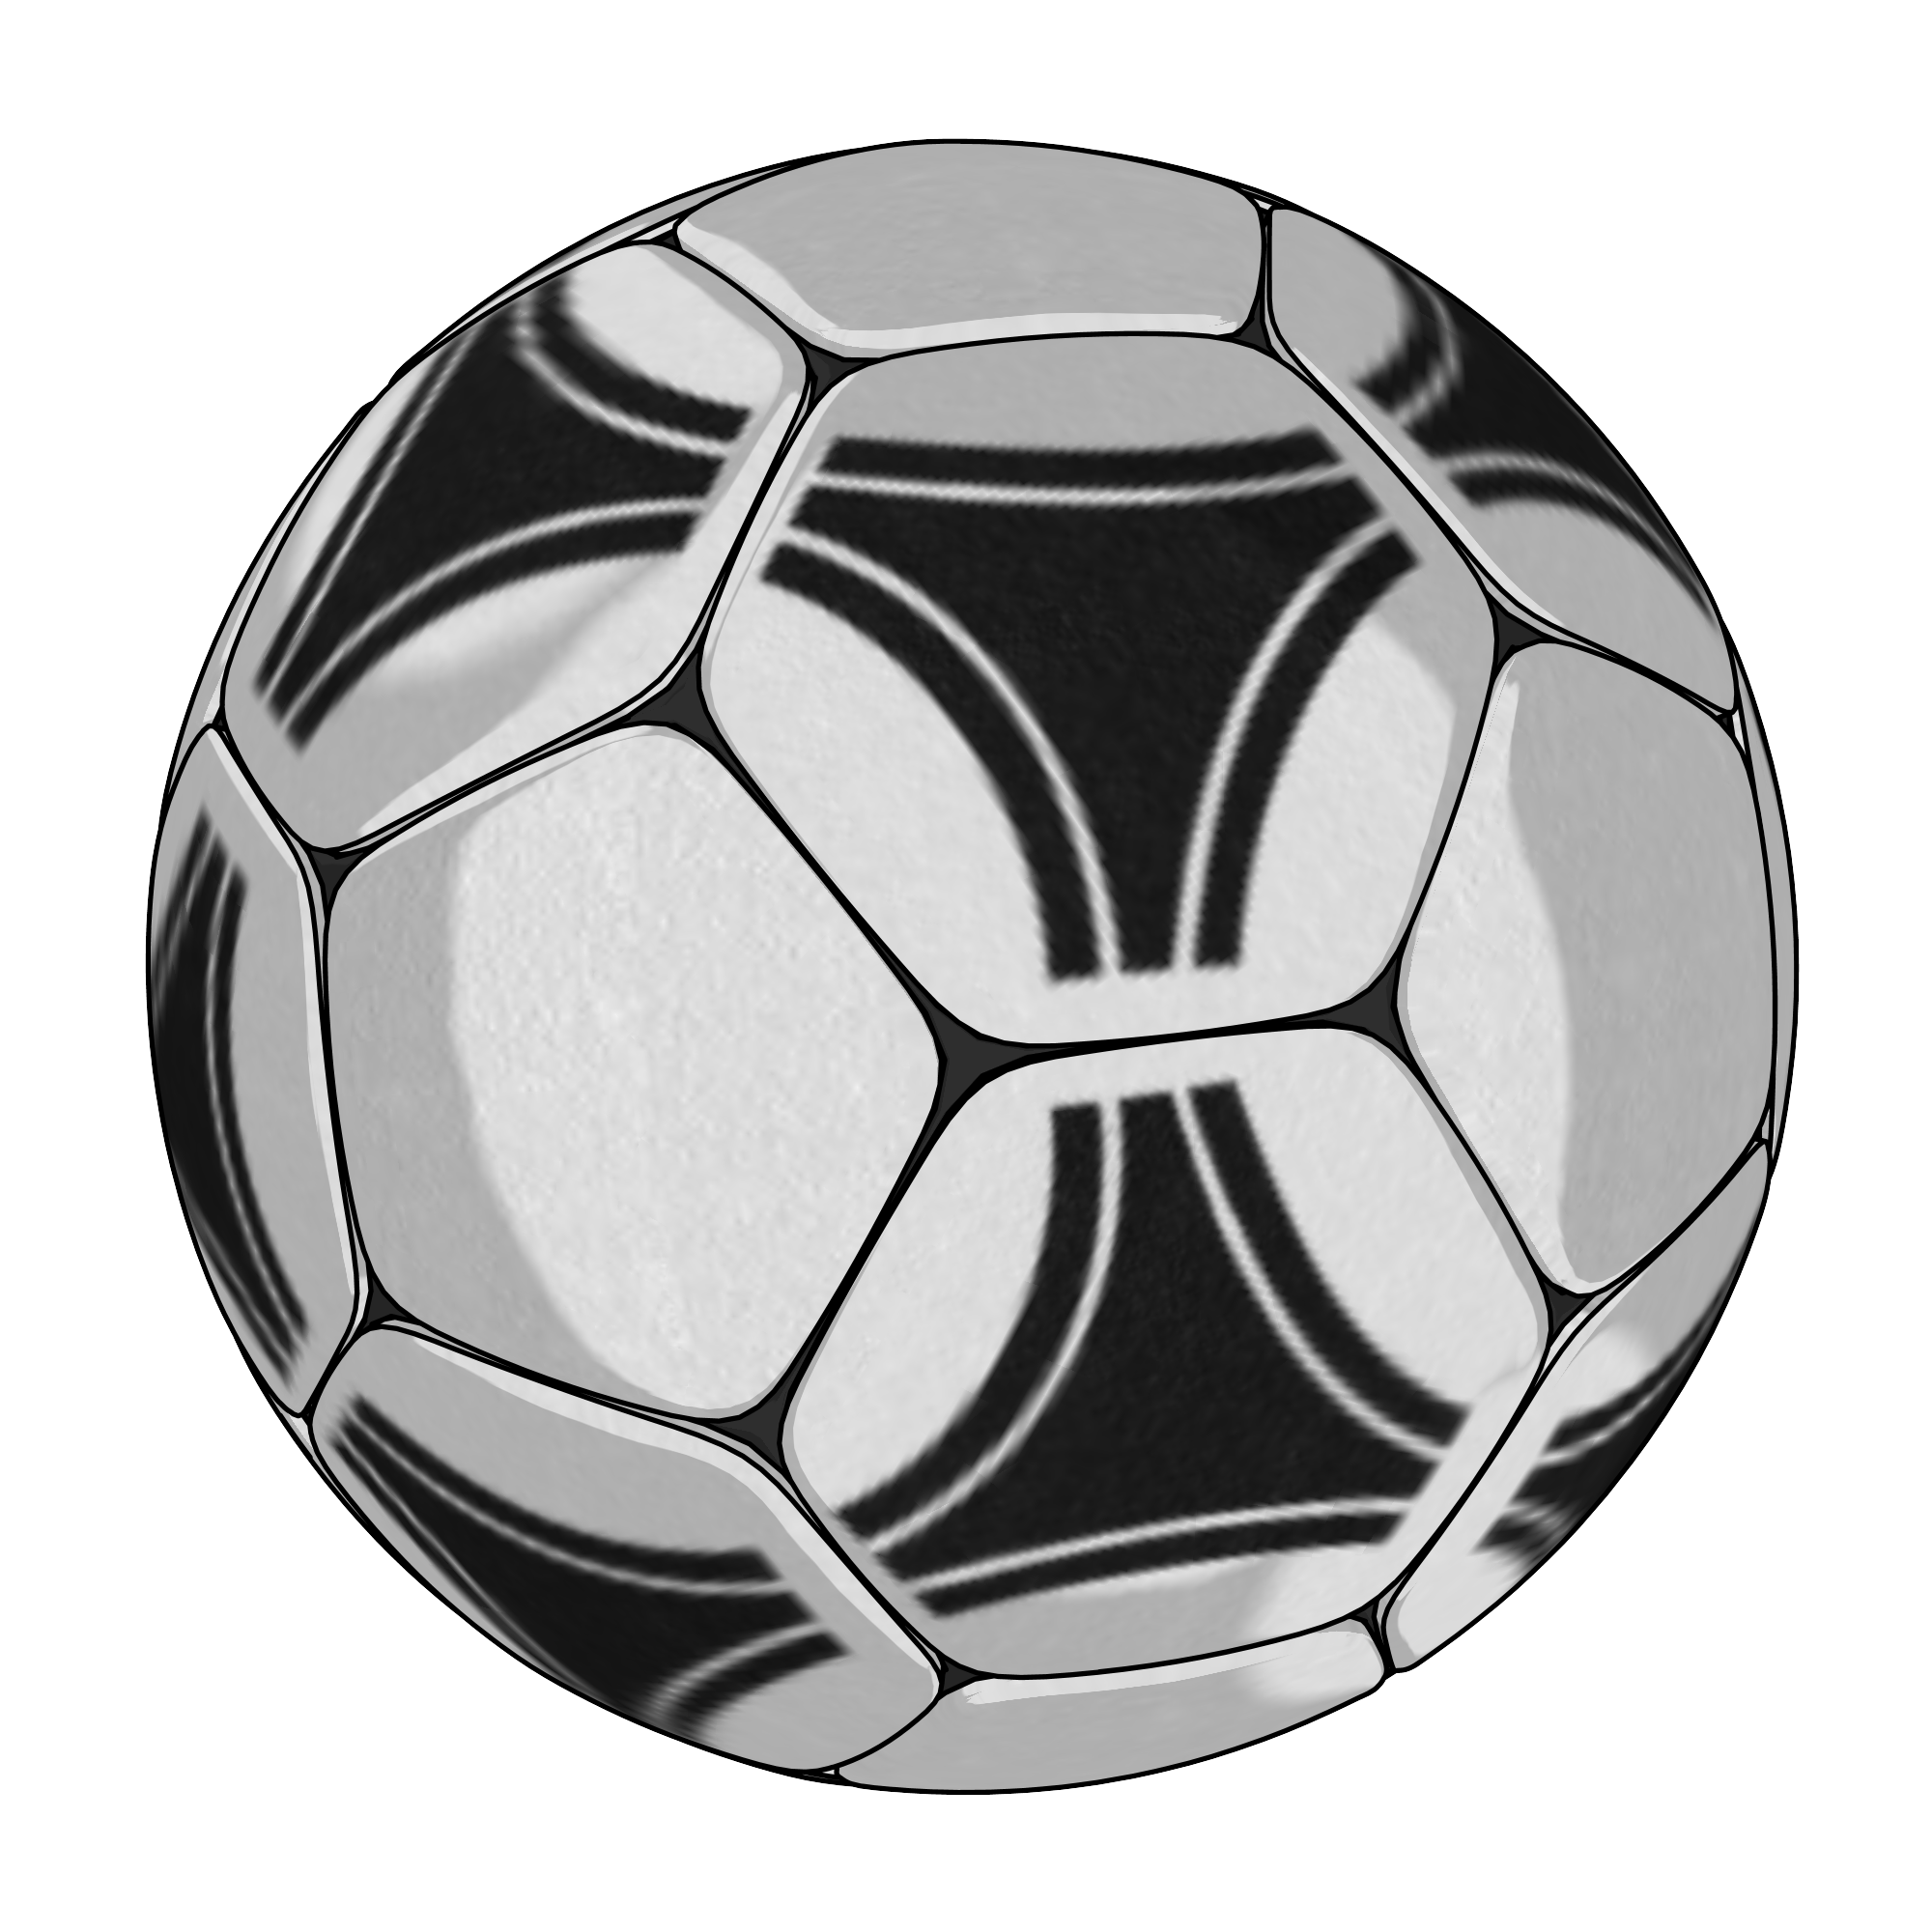 black and white stock Cartoon png picture clipartly. Grass clipart soccer ball